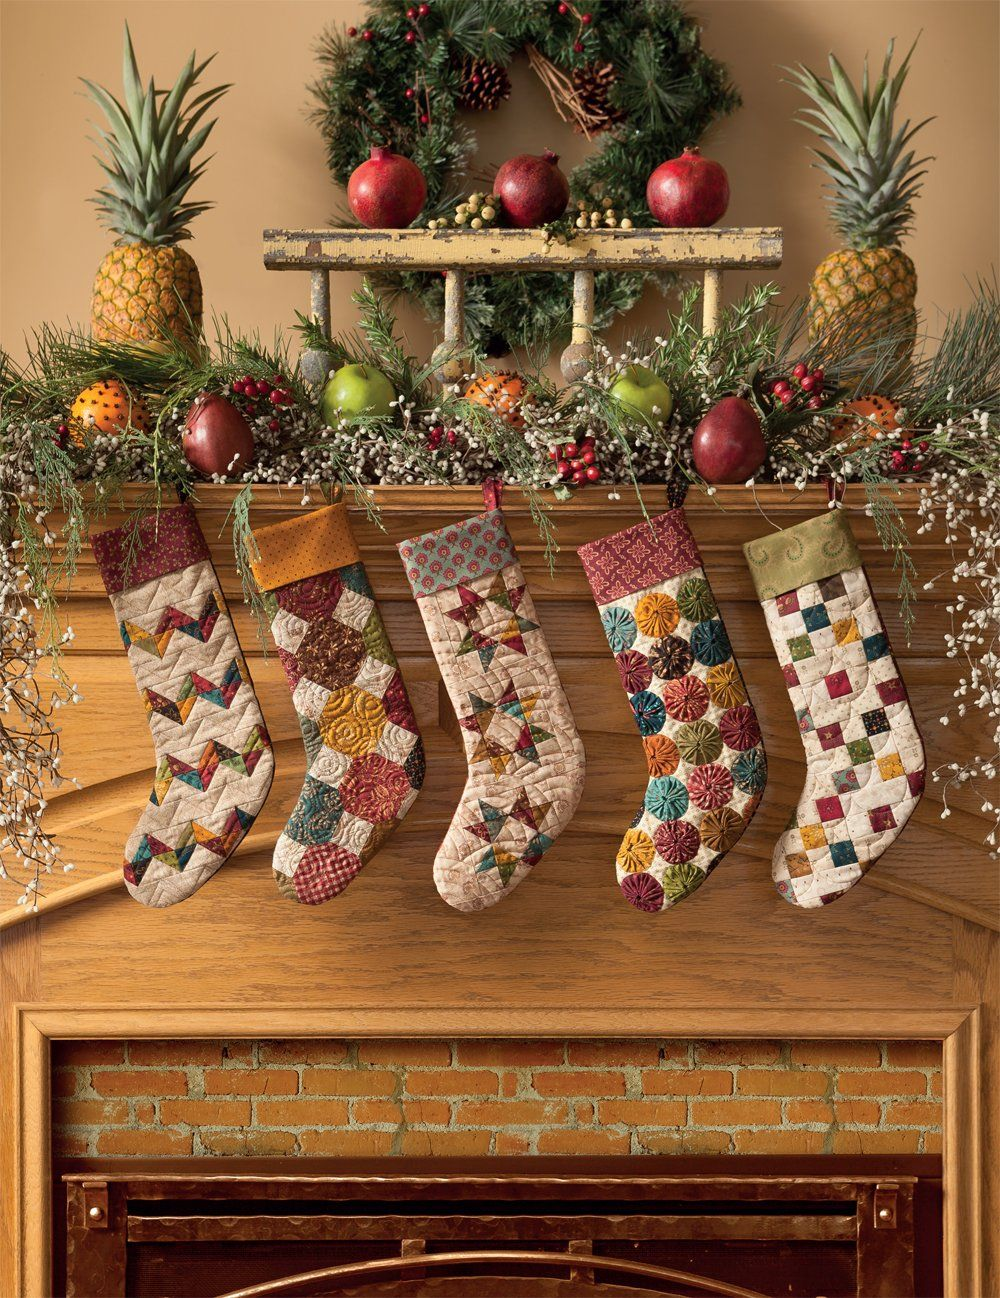 Simple christmas tidings scrappy quilts and projects for yuletide scrap basket stockings simple christmas tidings martingales scrappy quilts and projects for yuletide style by kim diehl solutioingenieria Images